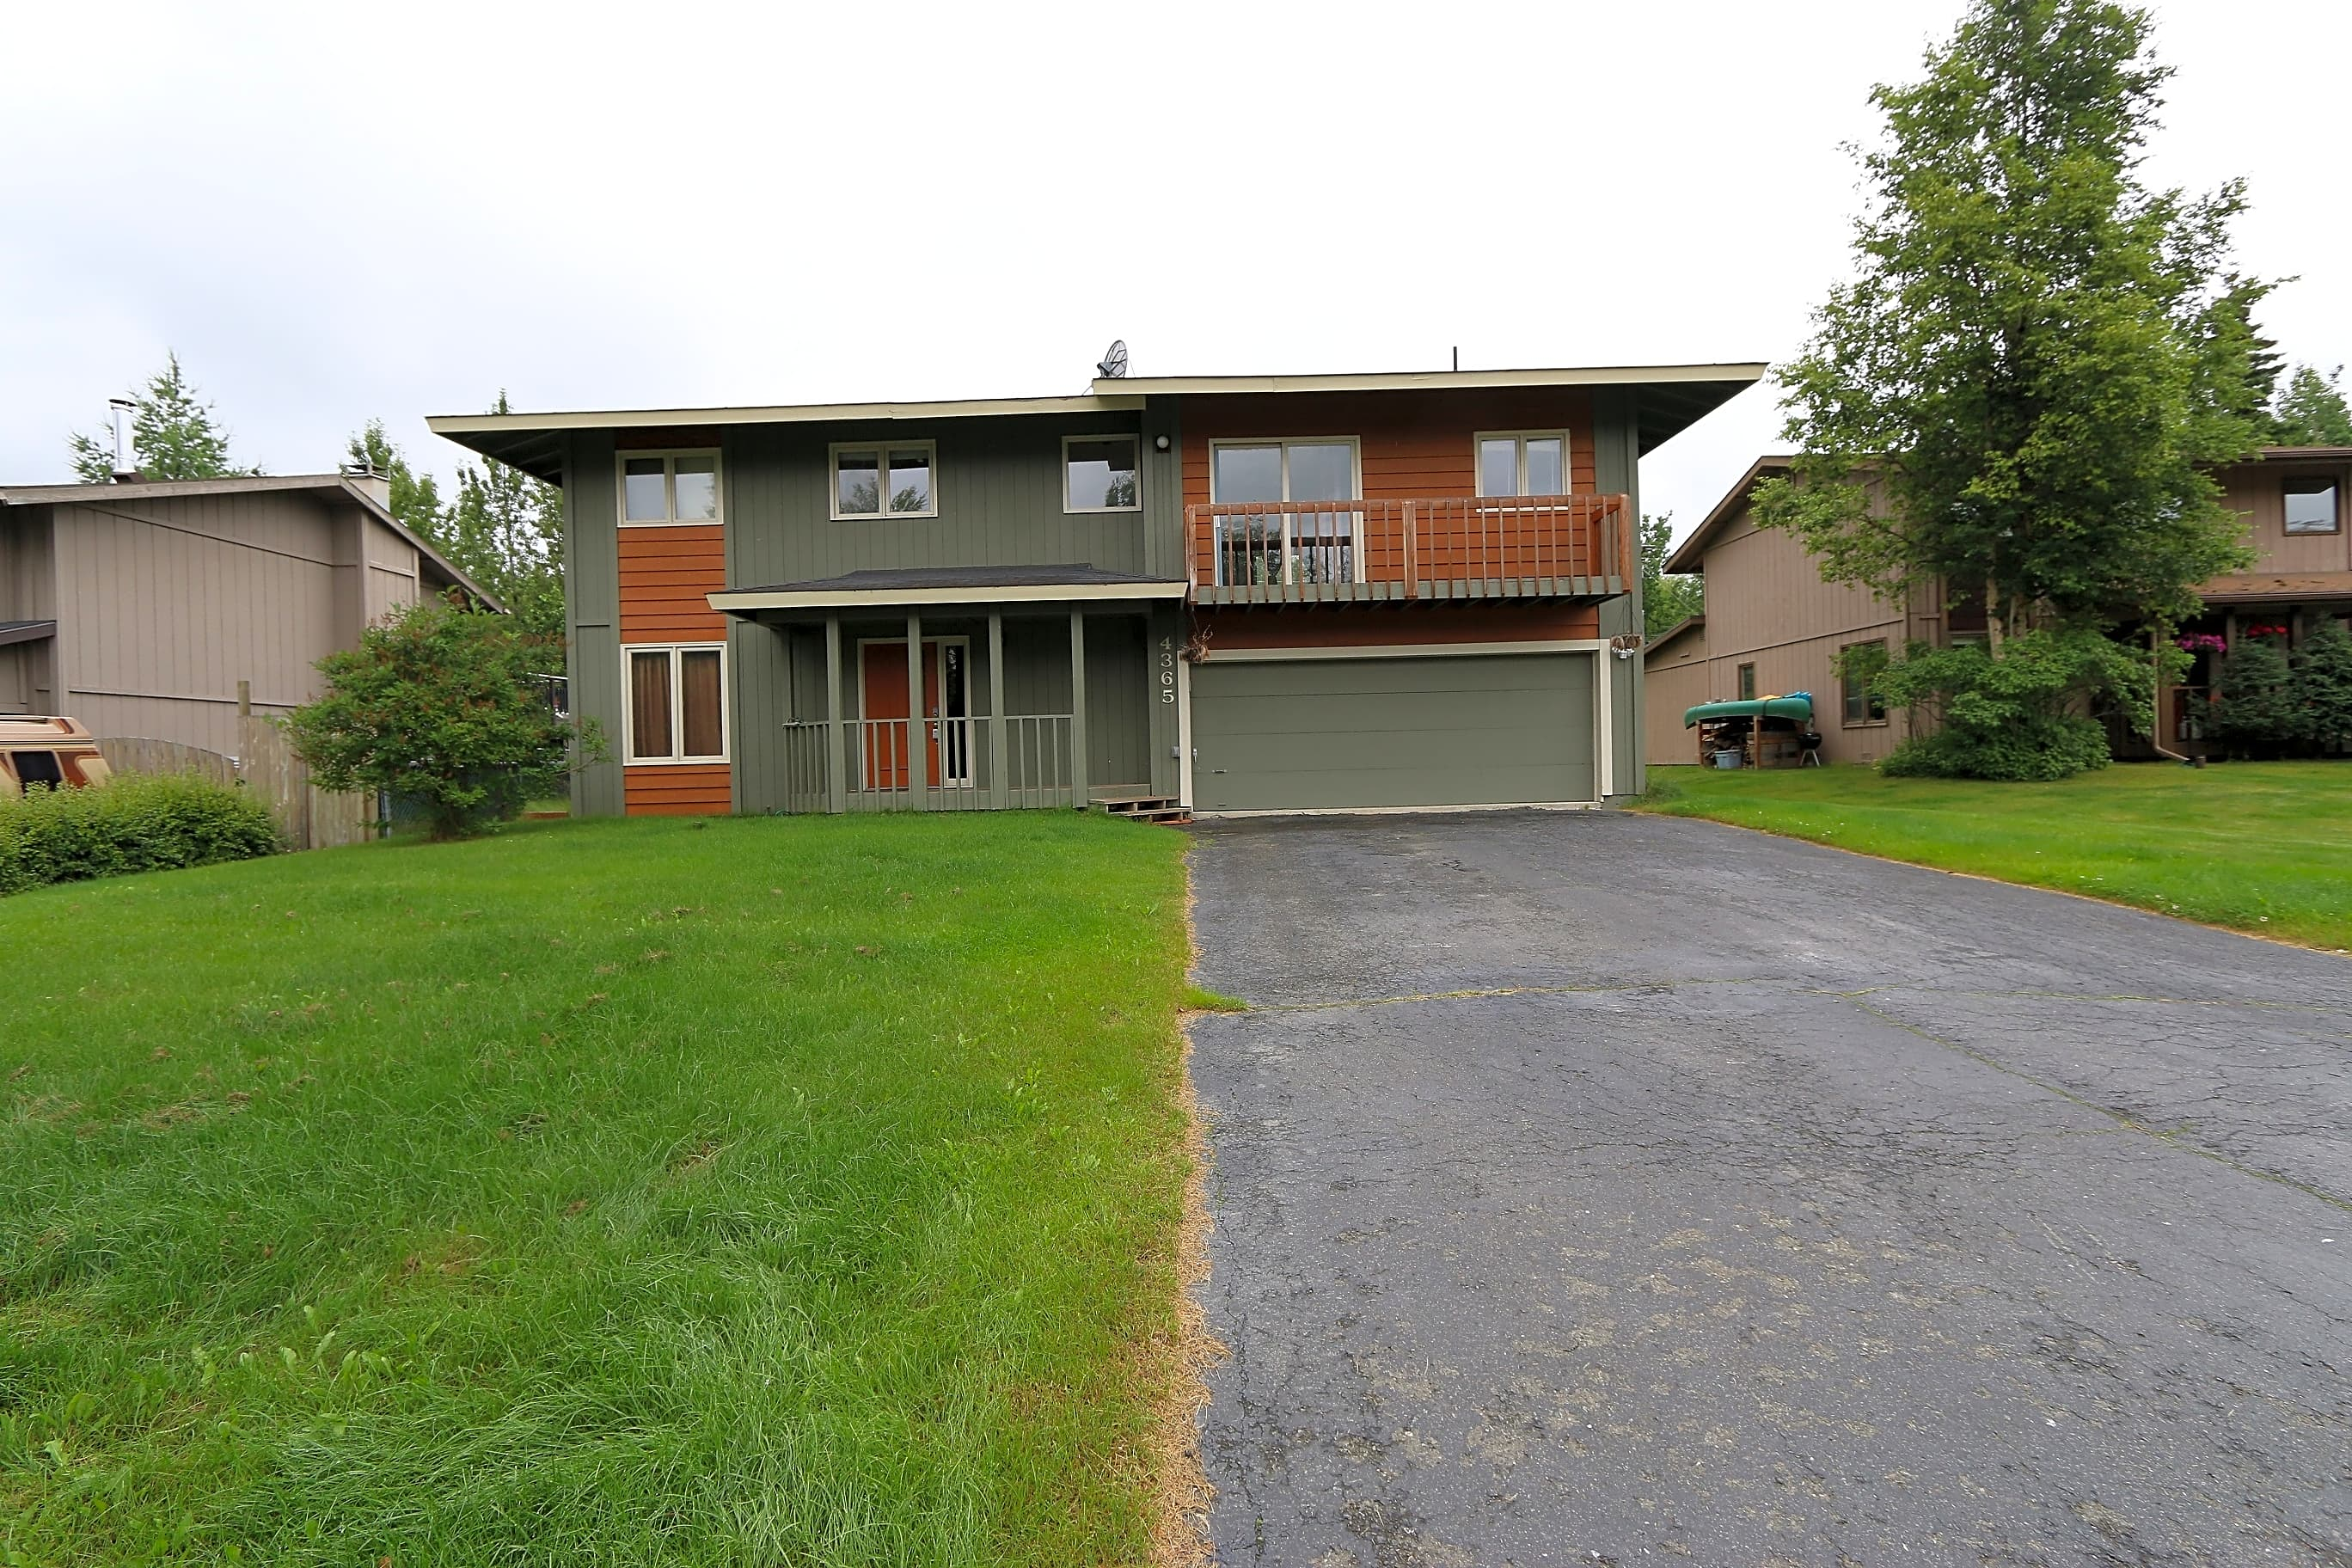 House for Rent in Anchorage